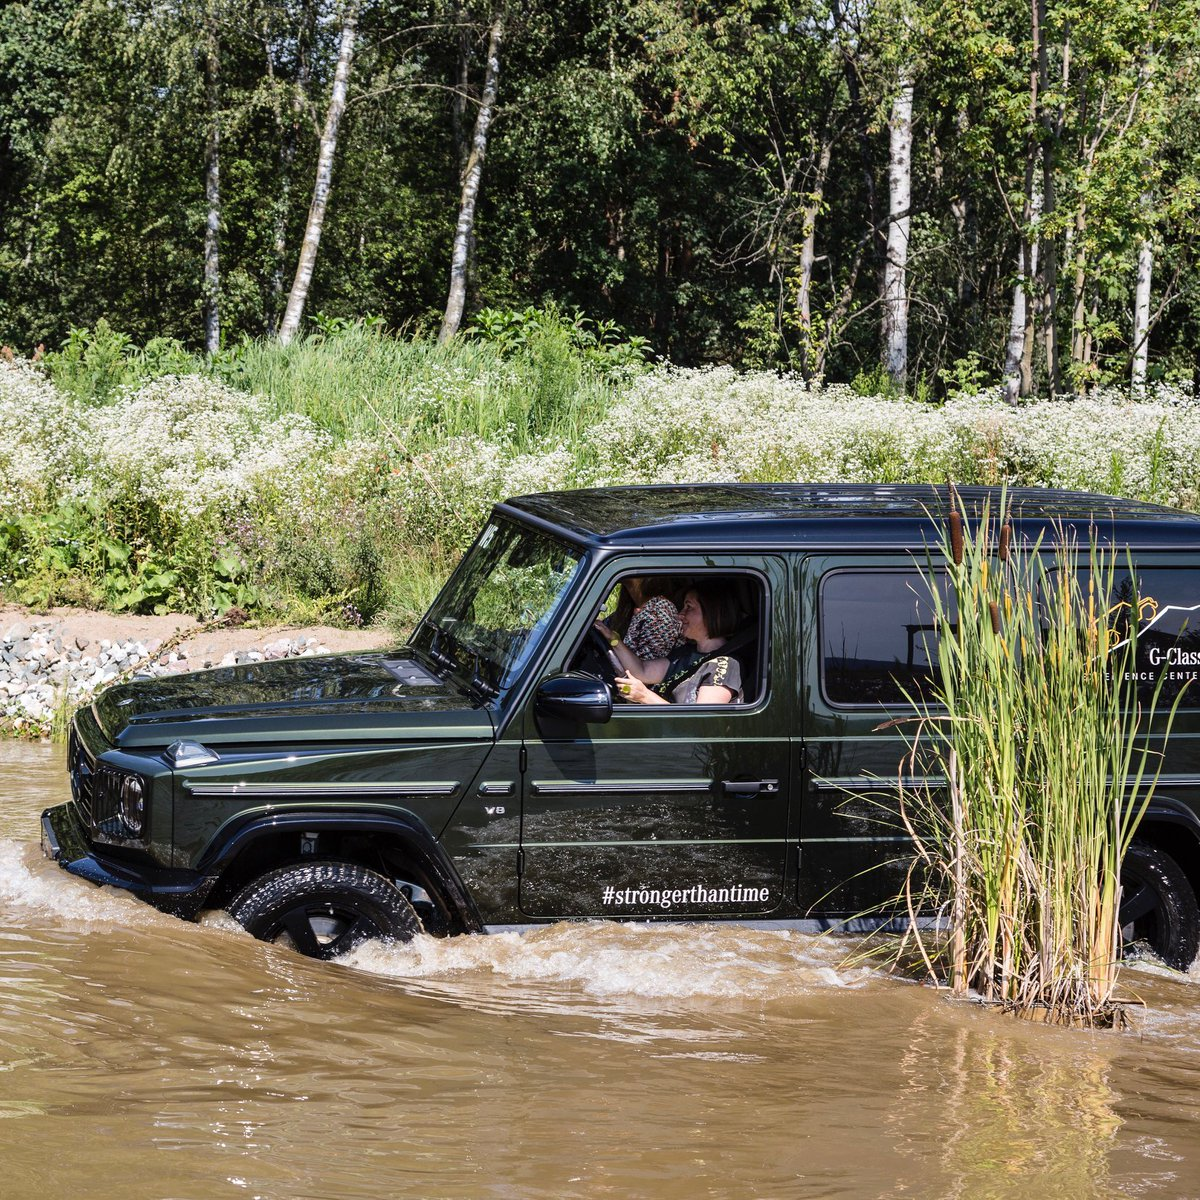 Exclusively for HER – the Women's Day at the G-Class Experience Center.  👉 https://t.co/o8LOeqVMrO  In exclusive, small groups you will get to know the full strengths of the G-Class and its fascinating abilities.  📷 Wolfgang Hummer https://t.co/A0NsugVIL7